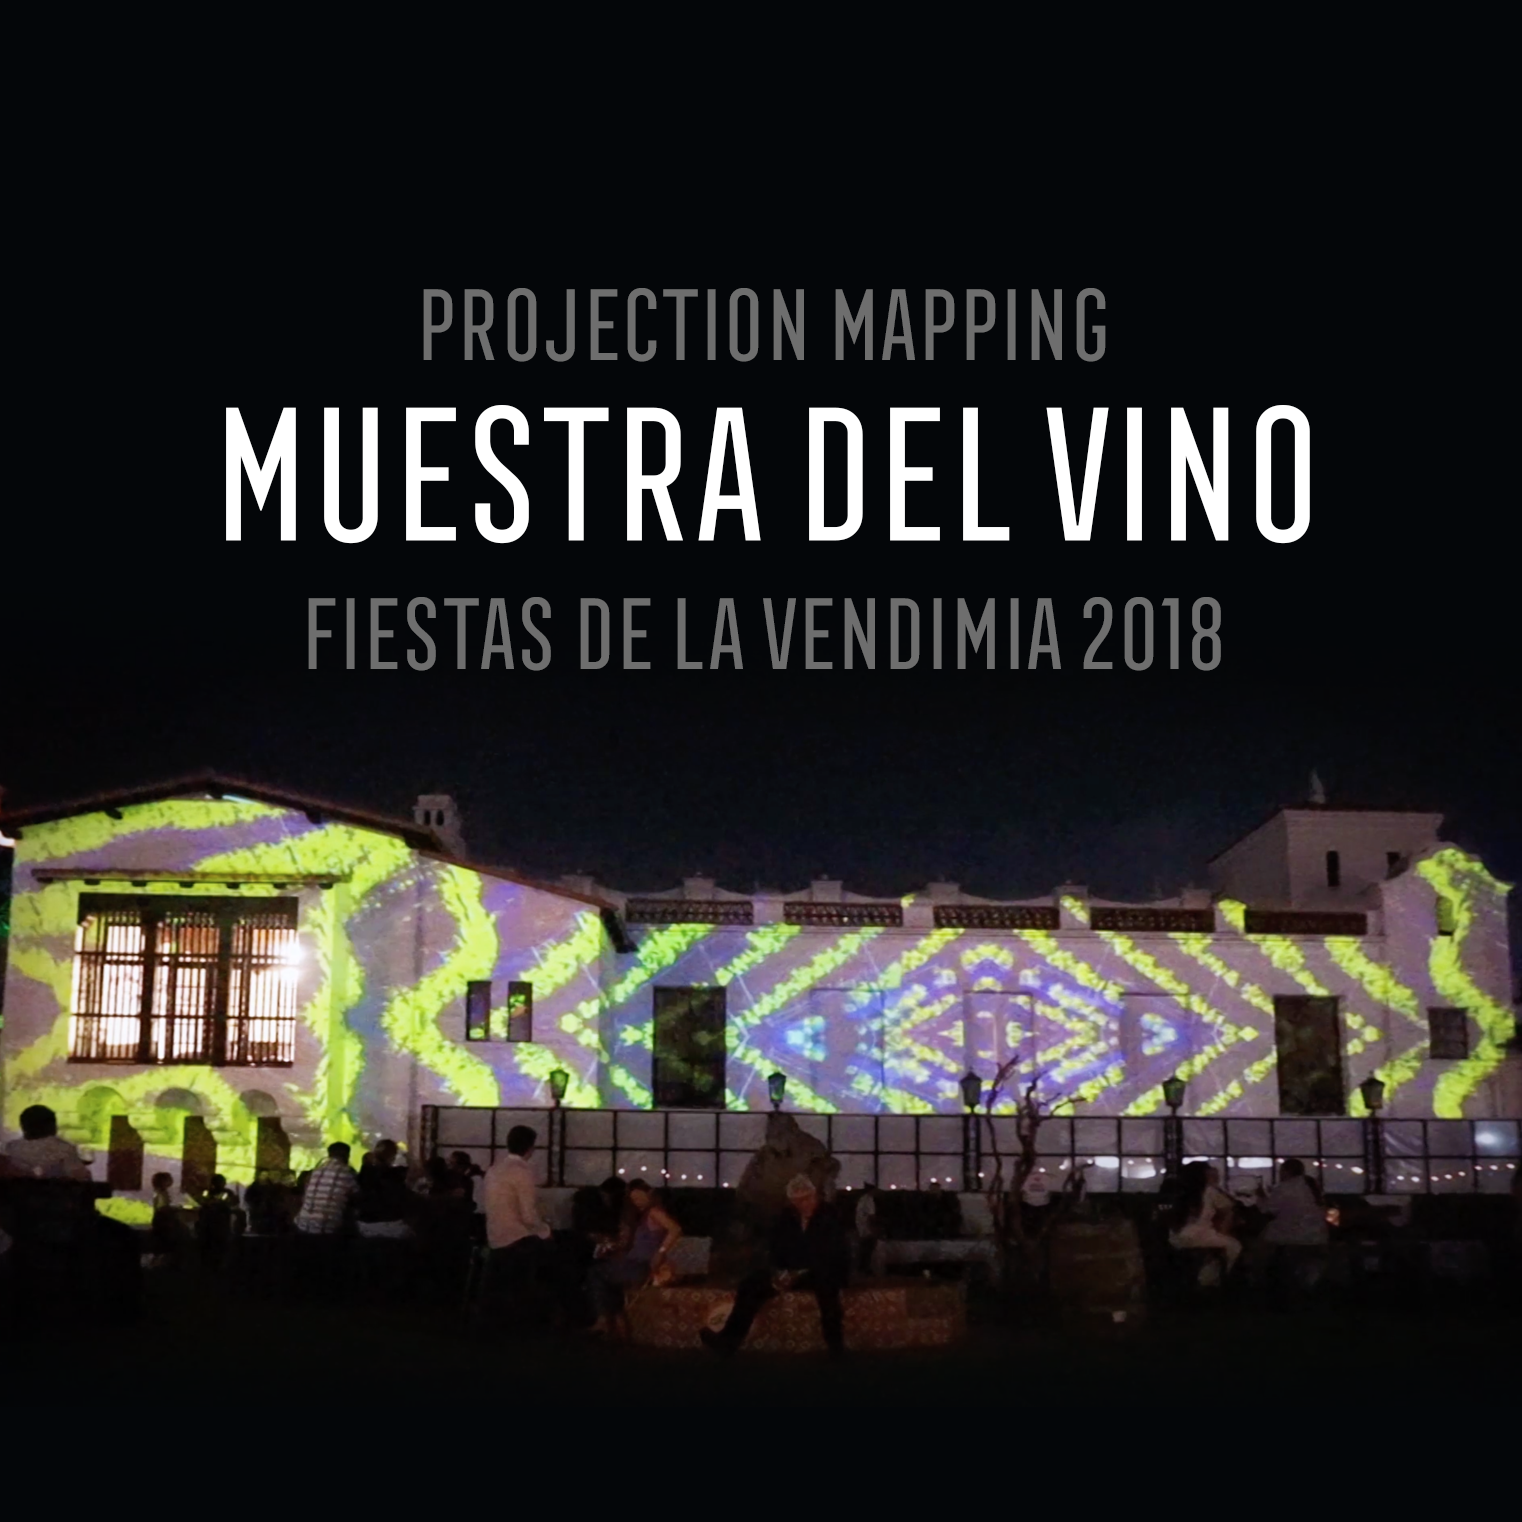 VIDEO MAPPING MUESTRA DEL VINO 2018